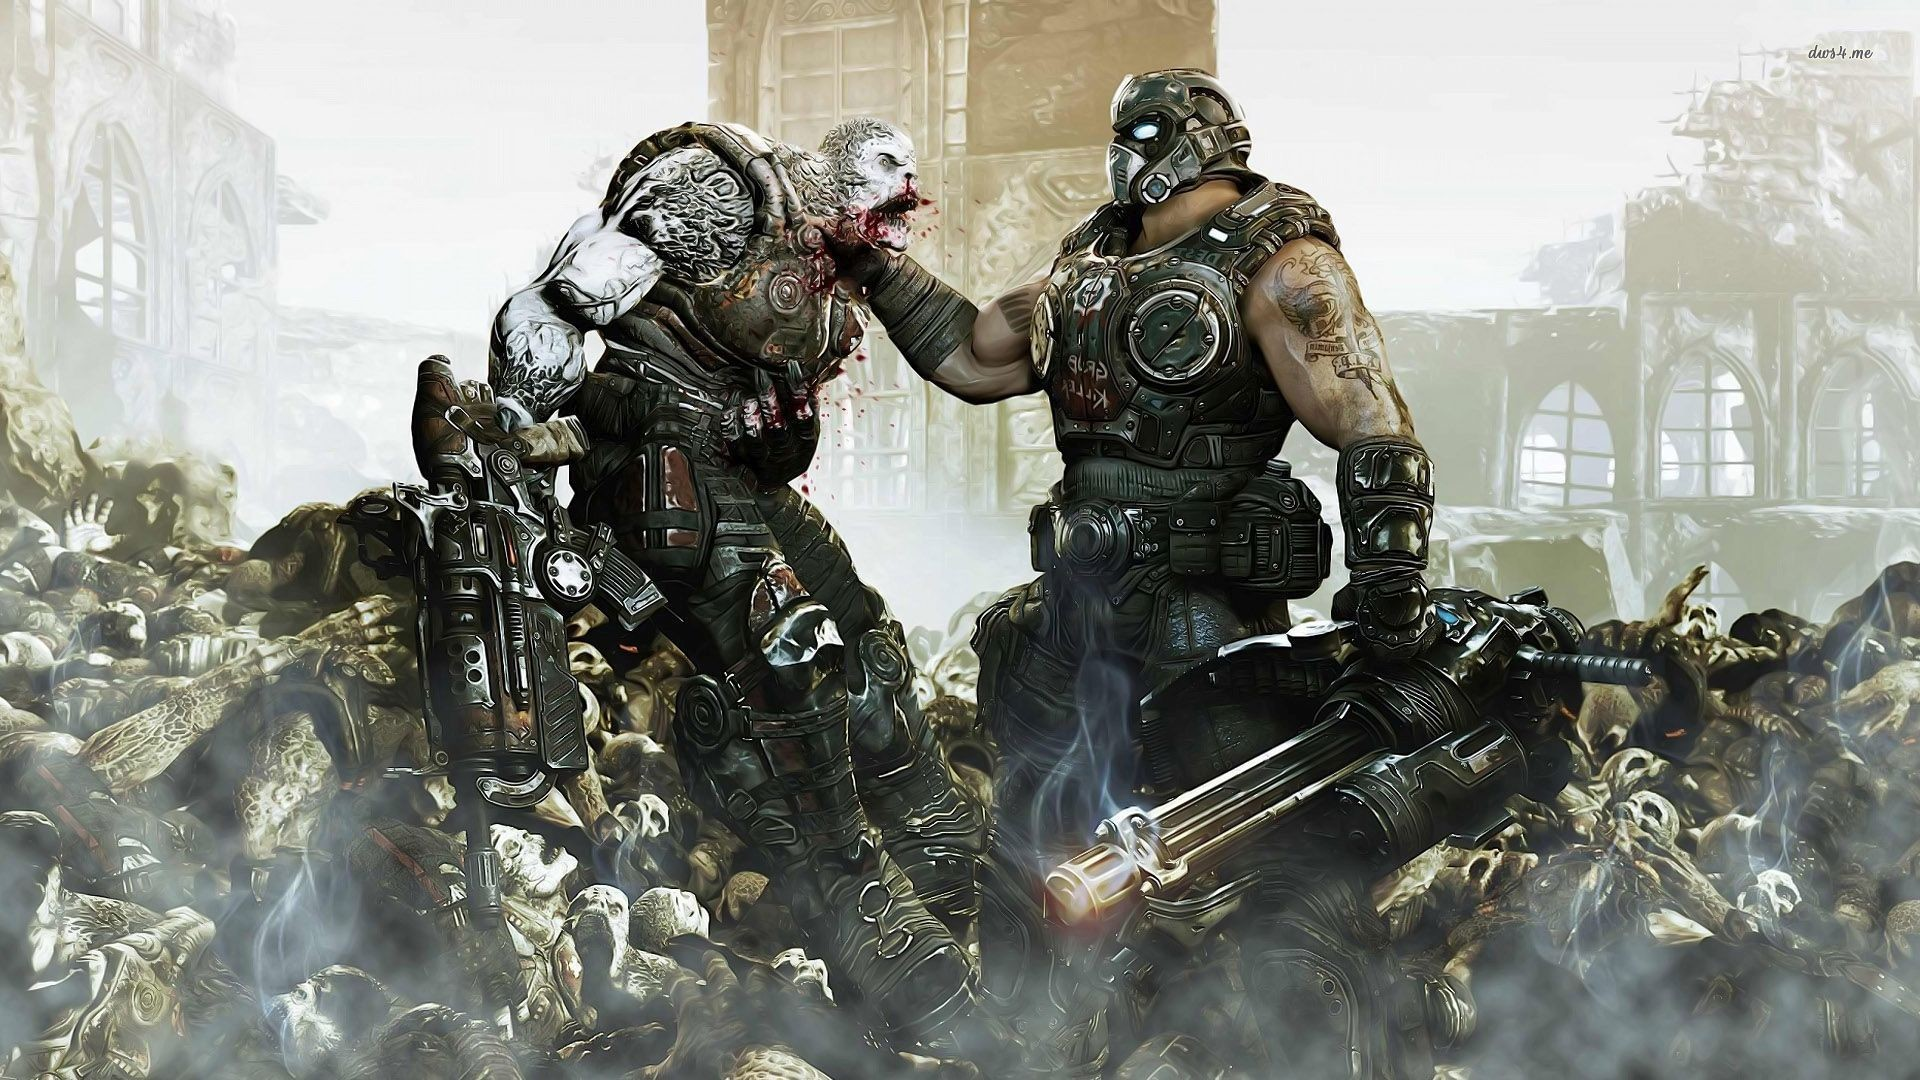 1920x1080 Top Gears Of War HD Wallpapers – Super Backgrounds